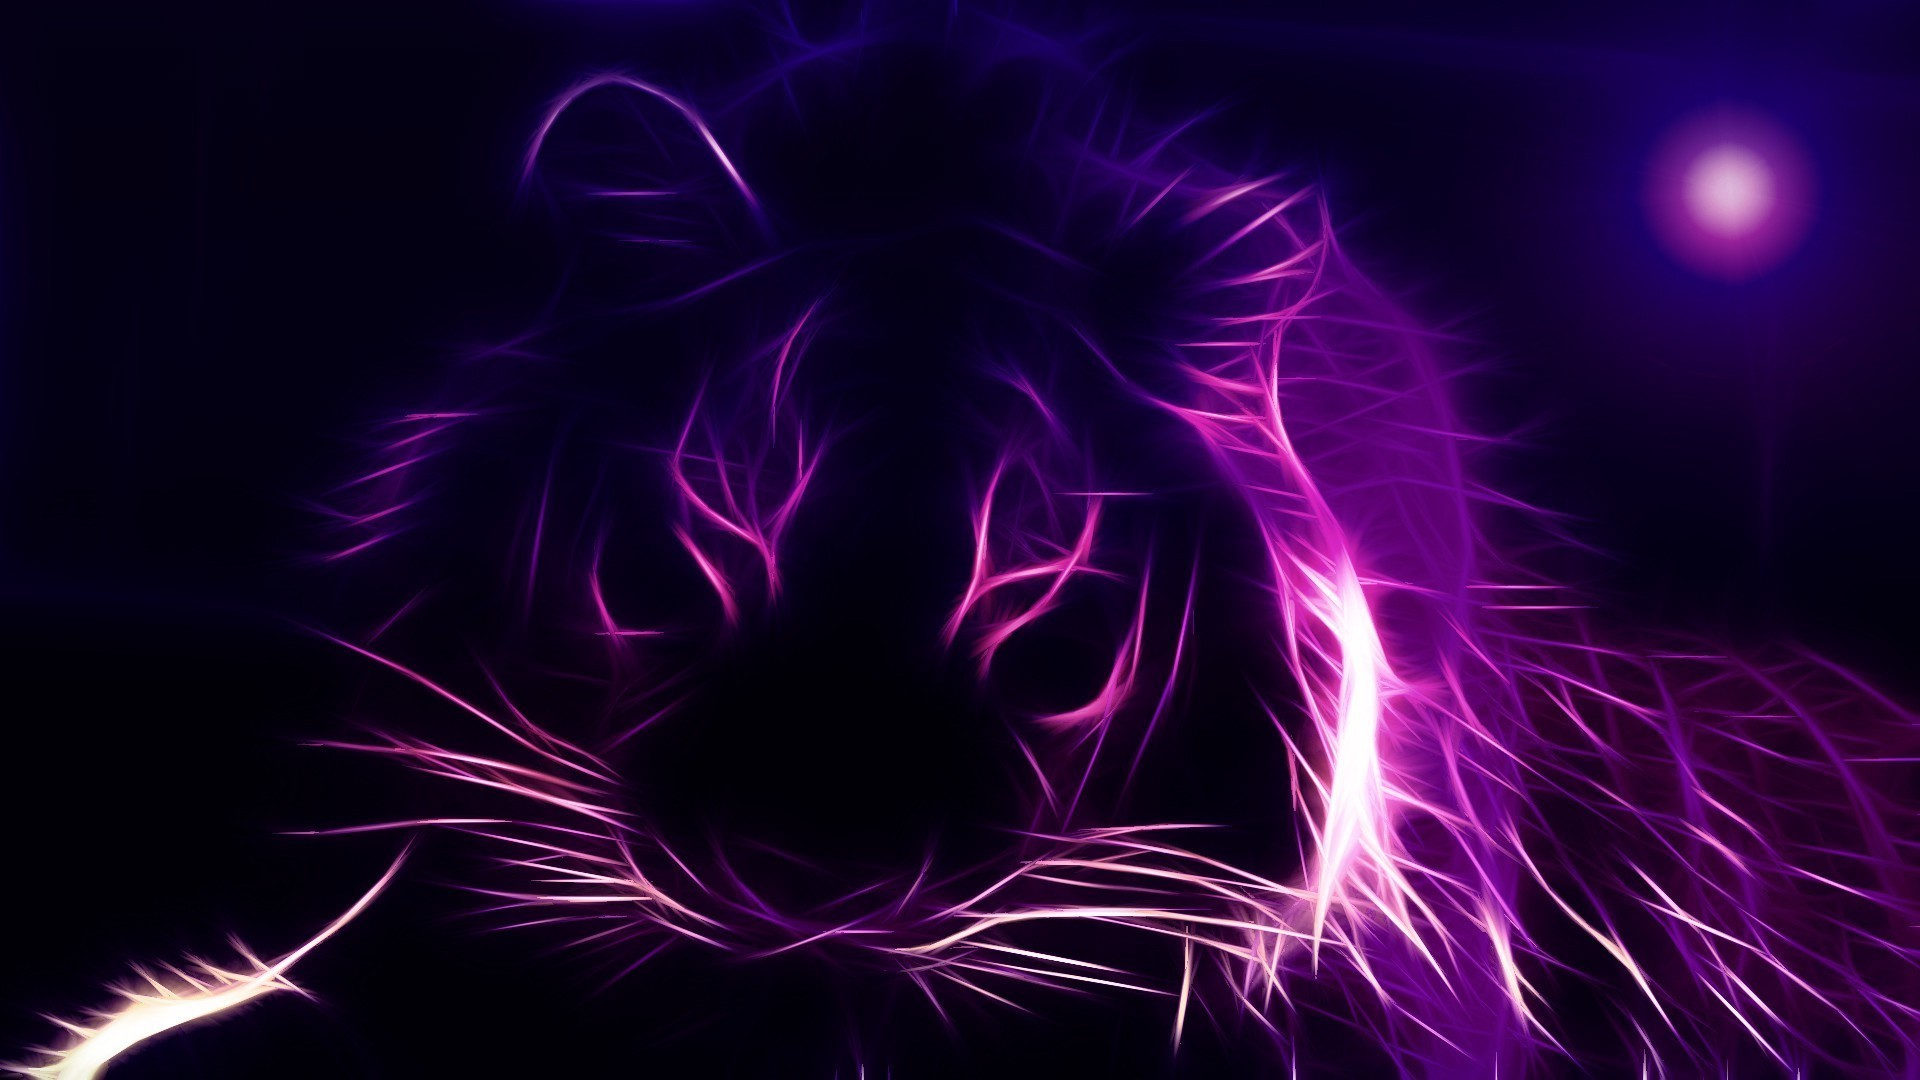 Res: 1920x1080, Abstract Wallpapers. Download the following neon Tiger ...